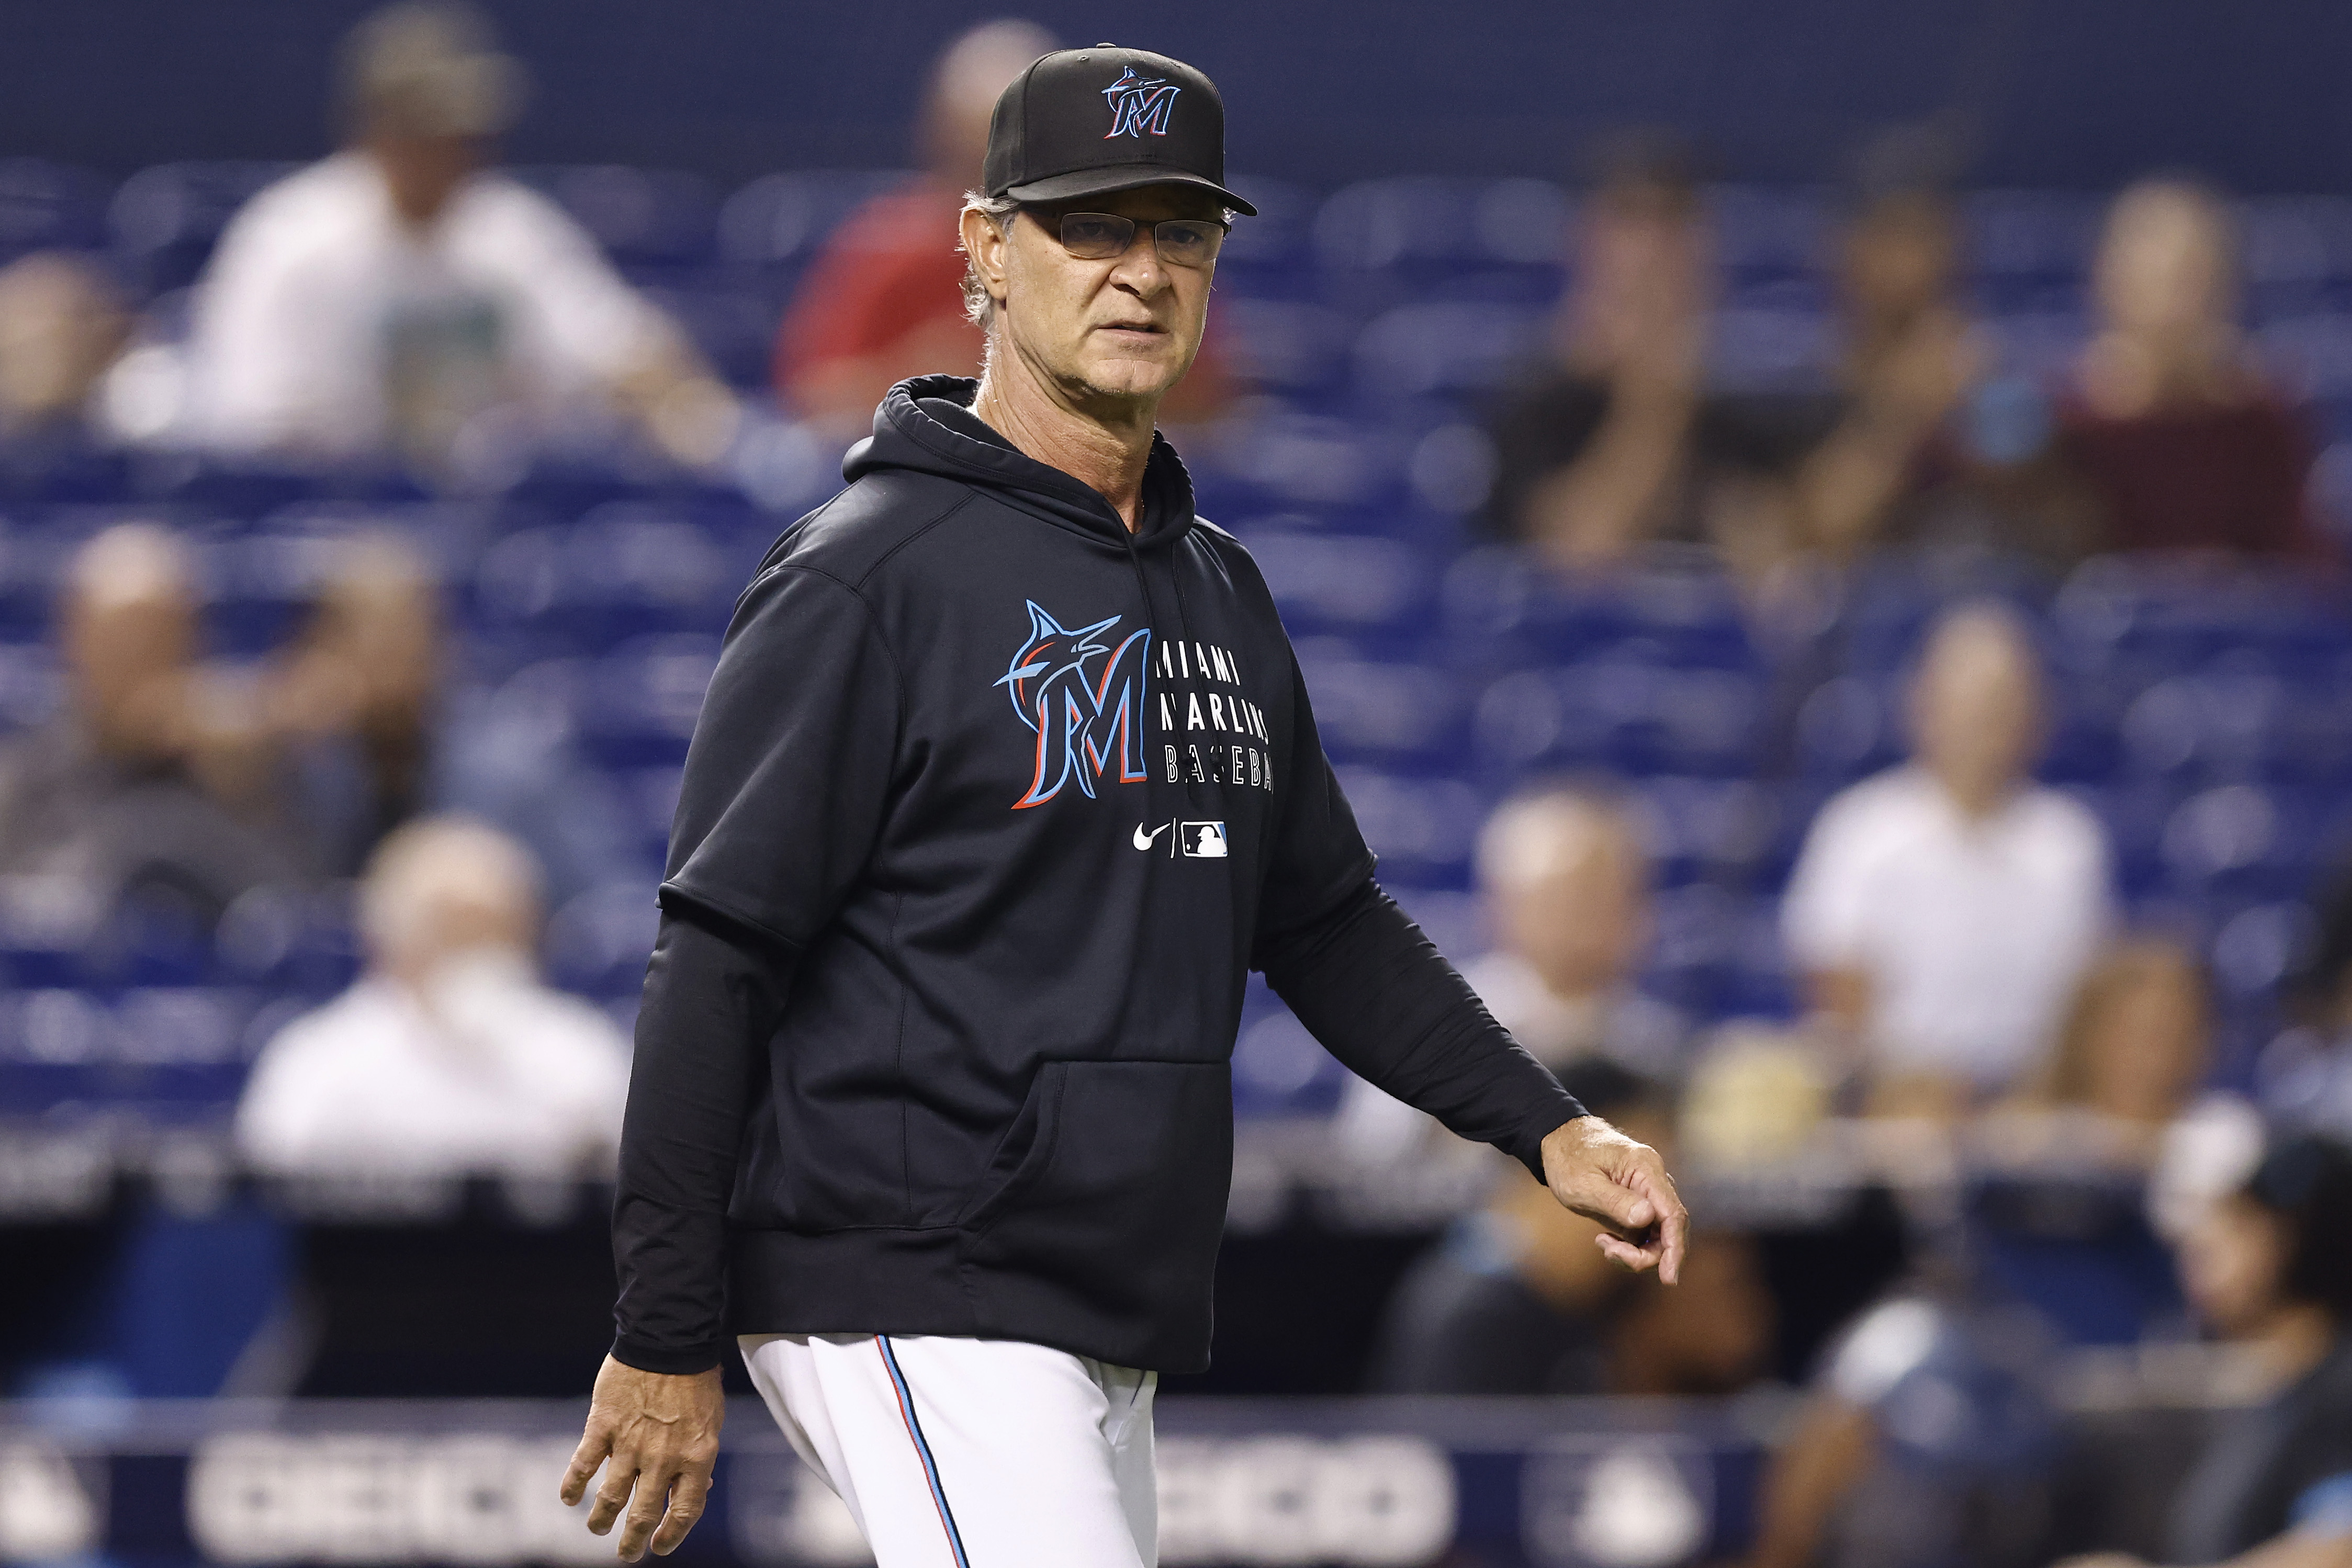 Manager Don Mattingly #8 of the Miami Marlins reacts against the Washington Nationals during the sixth inning at loanDepot park